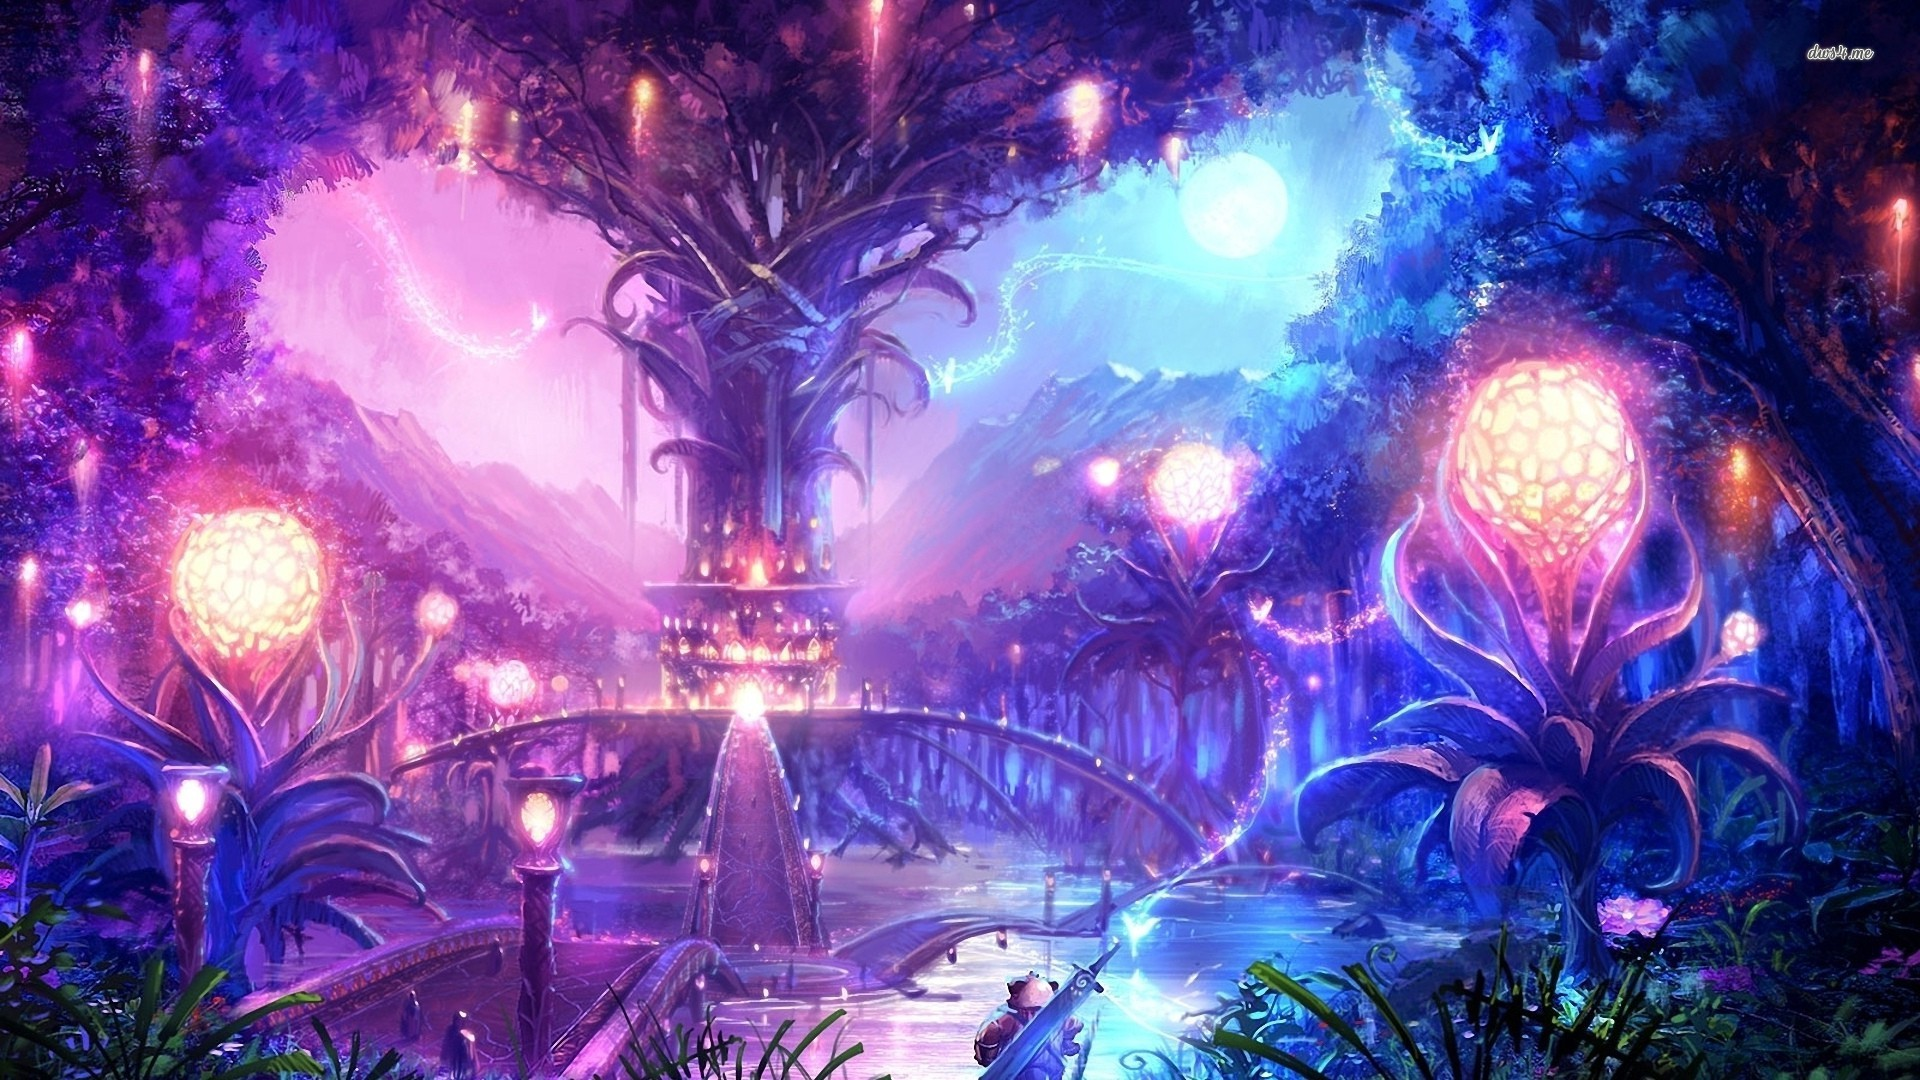 tera rising wallpaper - photo #26